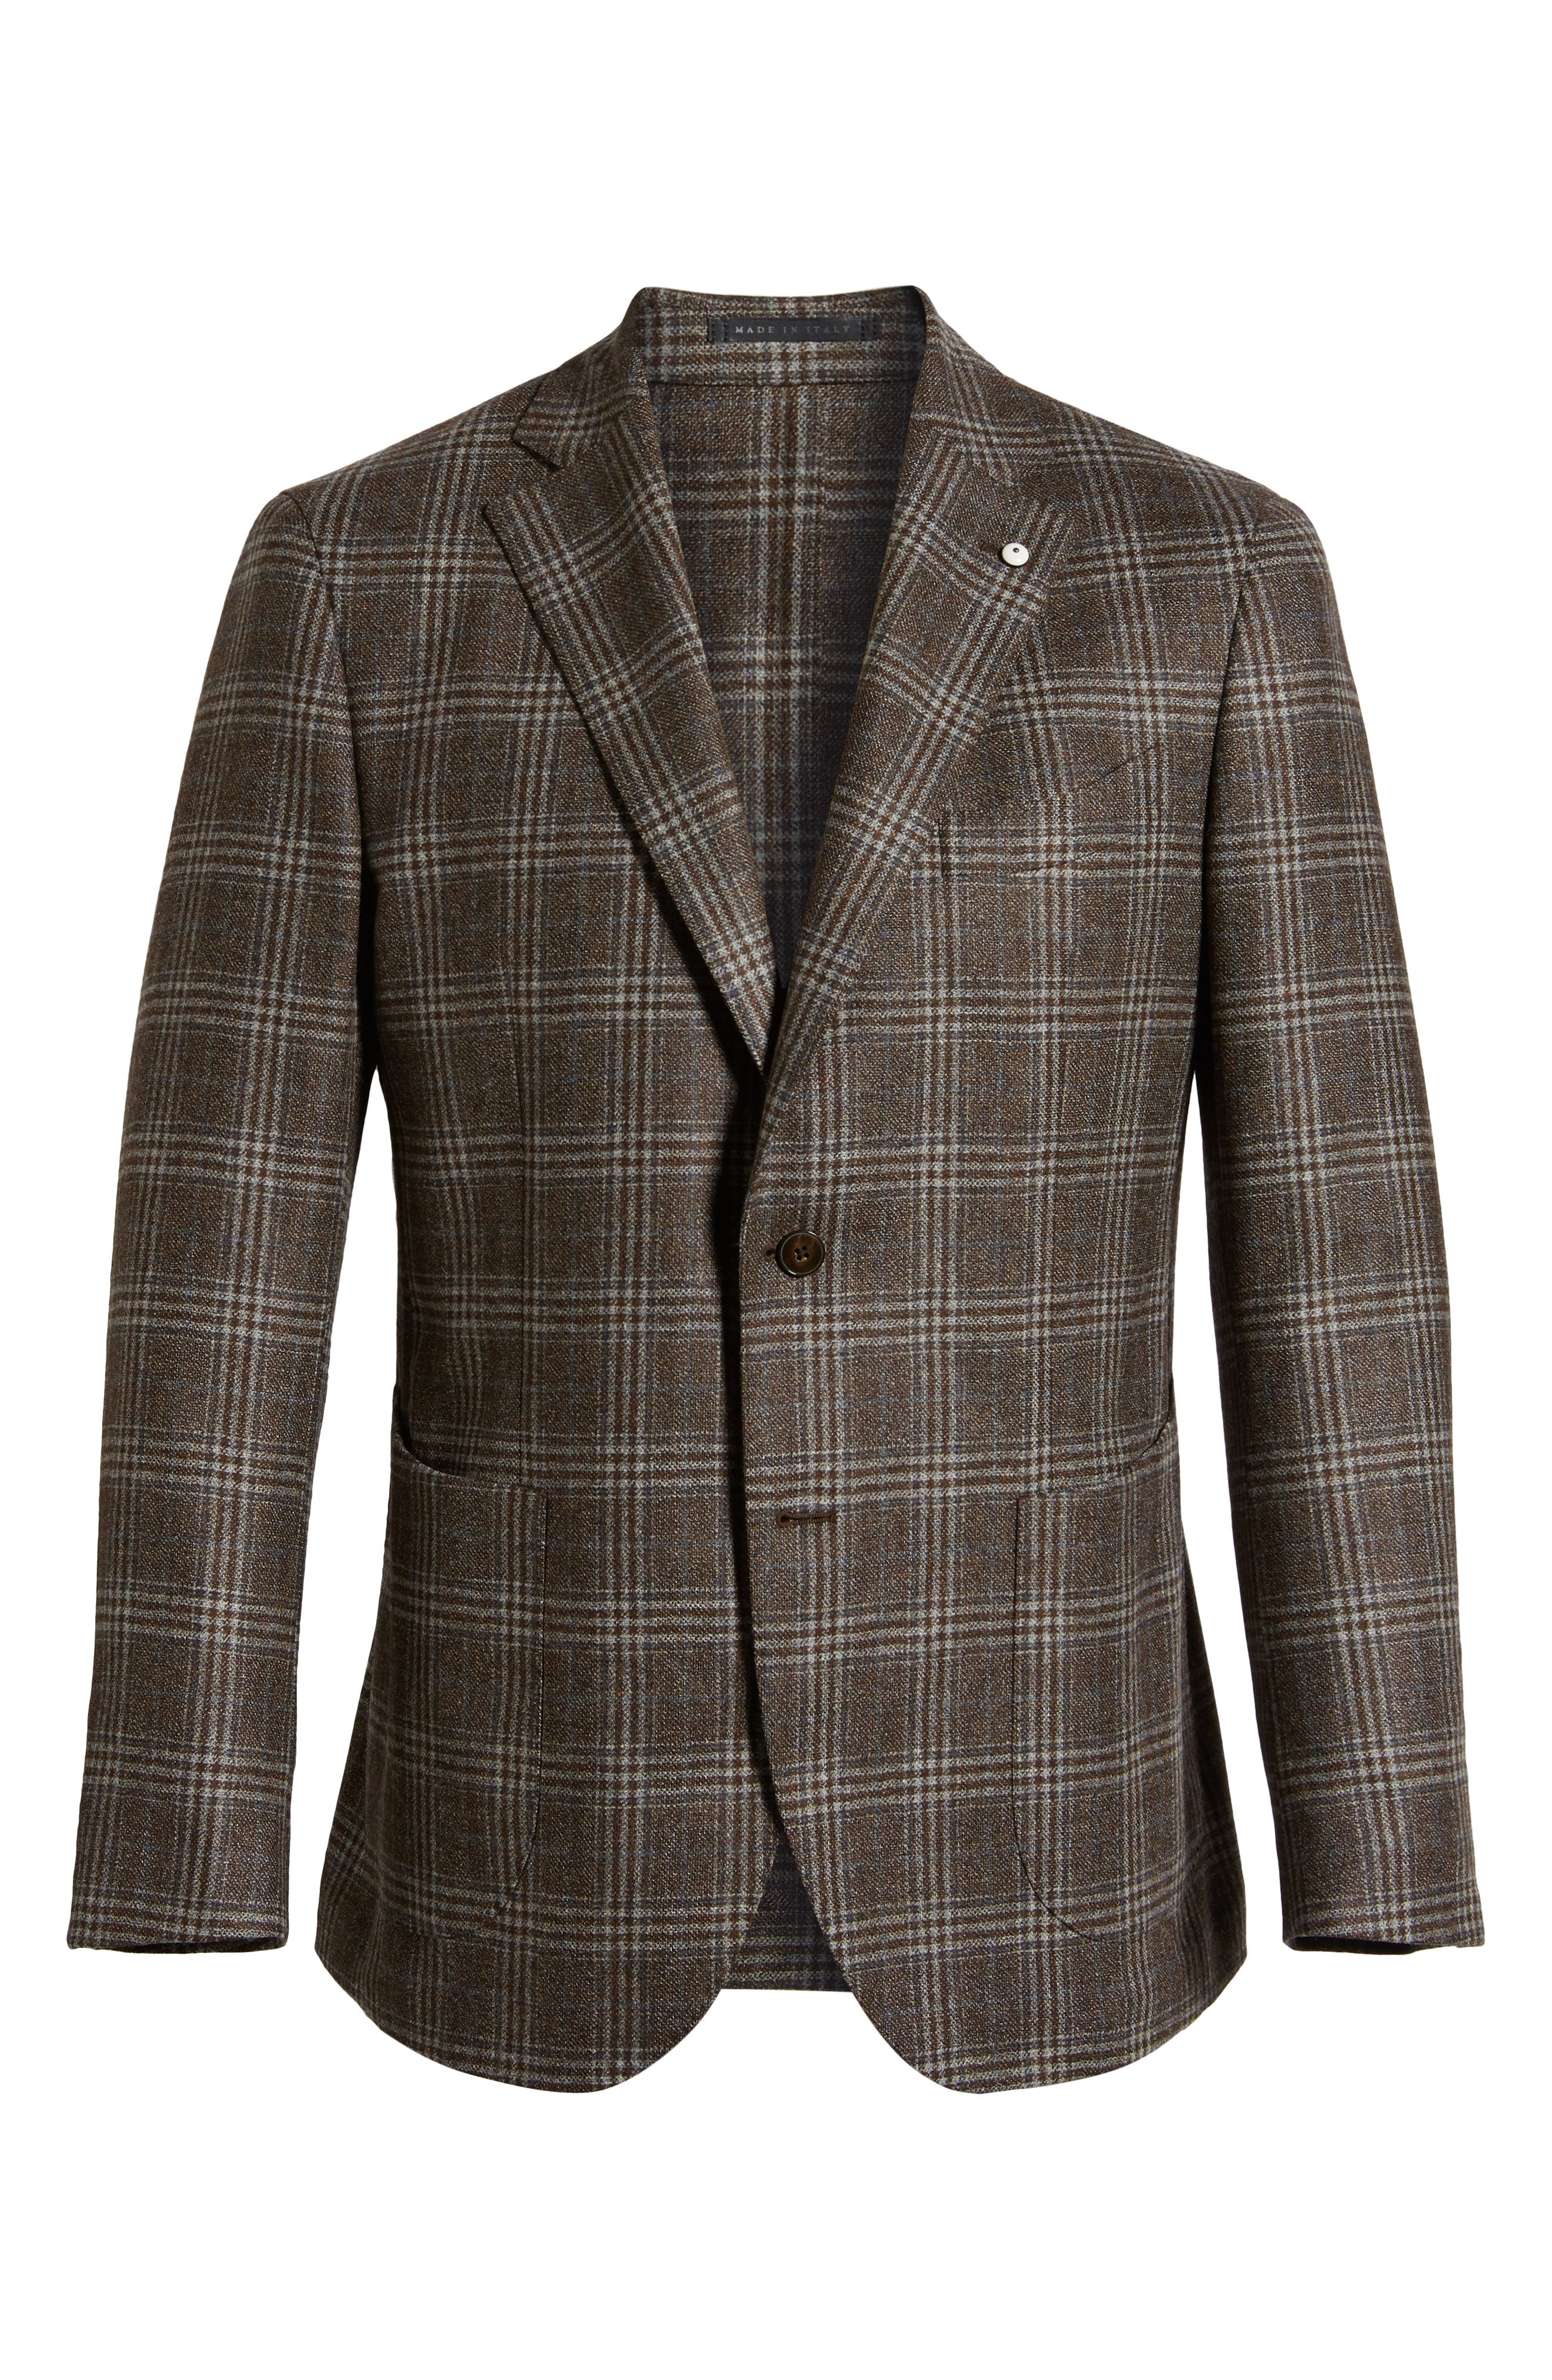 L.B.M 1911 Classic Fit Plaid Wool Sport Coat,                             Alternate thumbnail 5, color,                             BROWN